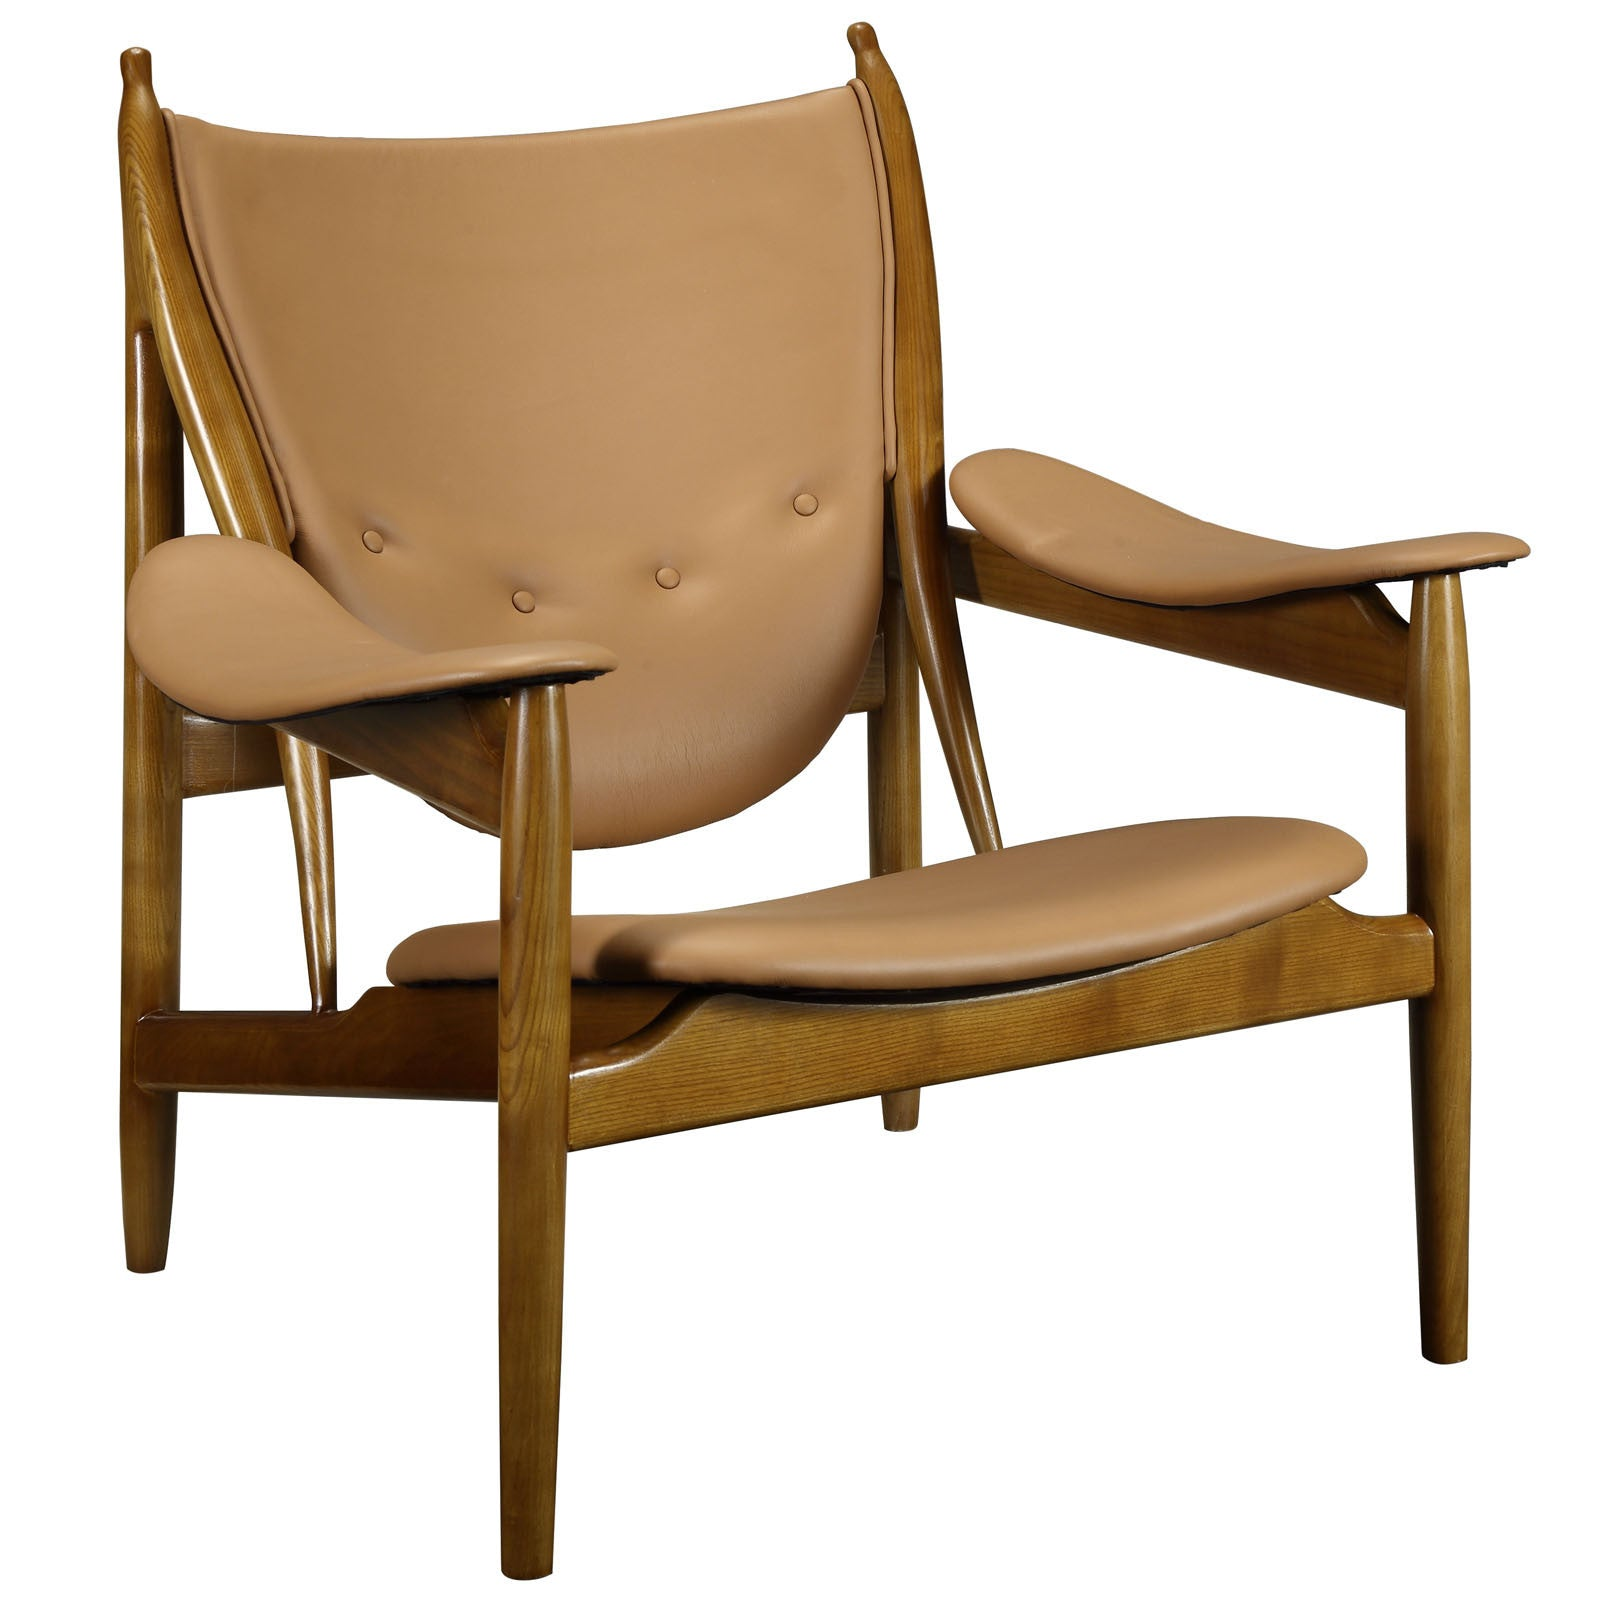 Fine Finn Juhl Chieftains Chair Reproduction Unemploymentrelief Wooden Chair Designs For Living Room Unemploymentrelieforg